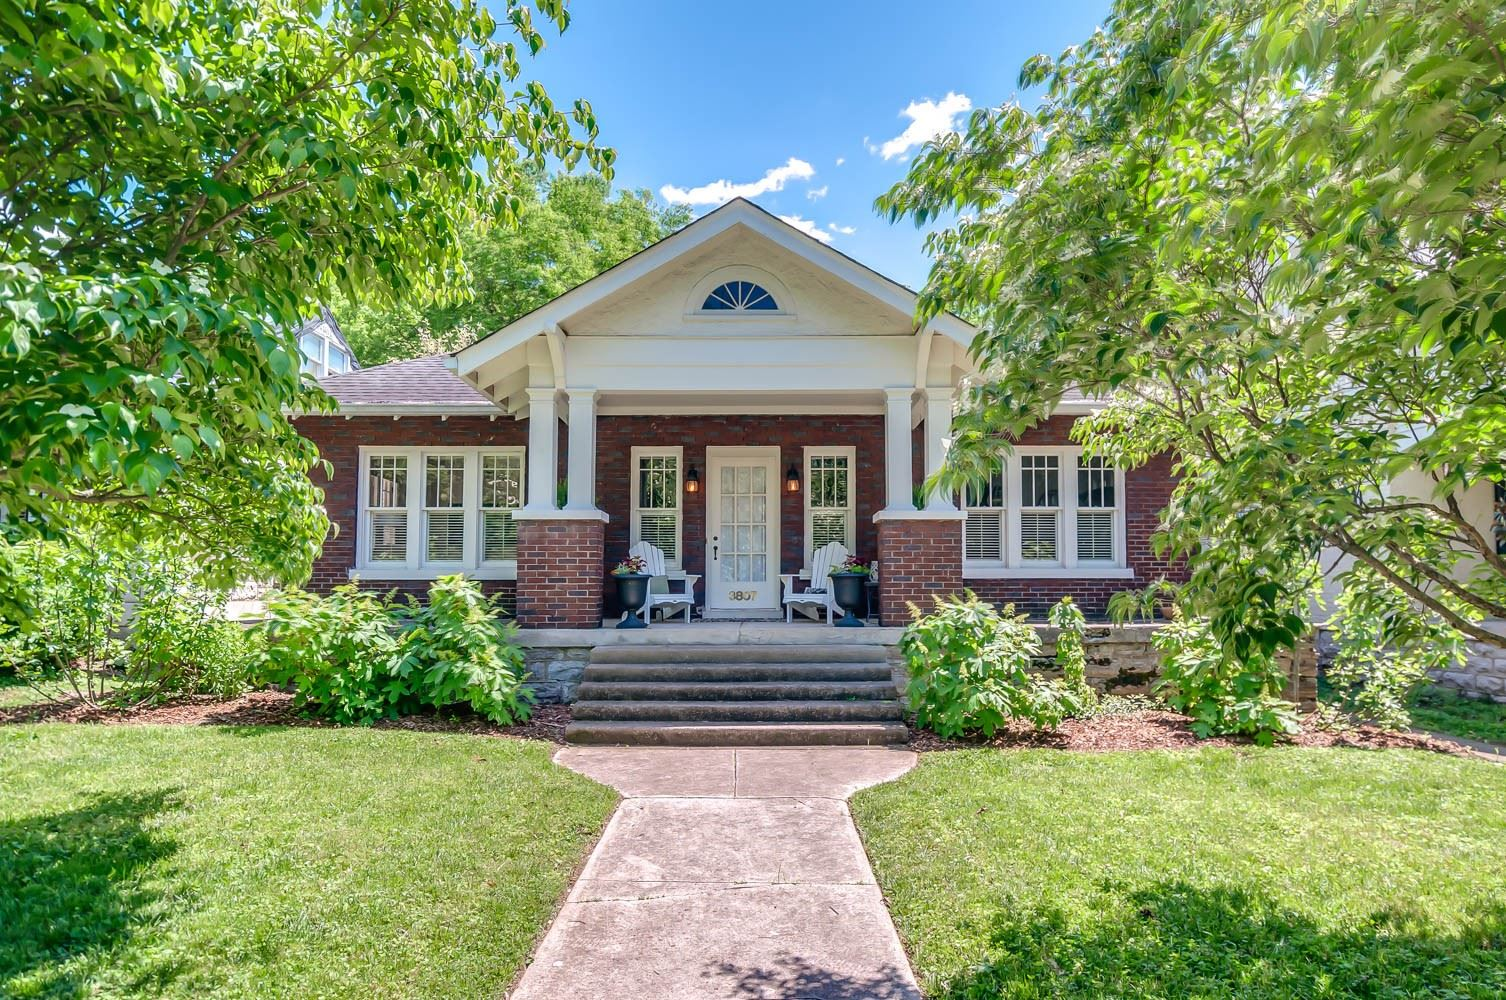 3807 Central Ave, Nashville, TN 37205 - MLS#: 2252203